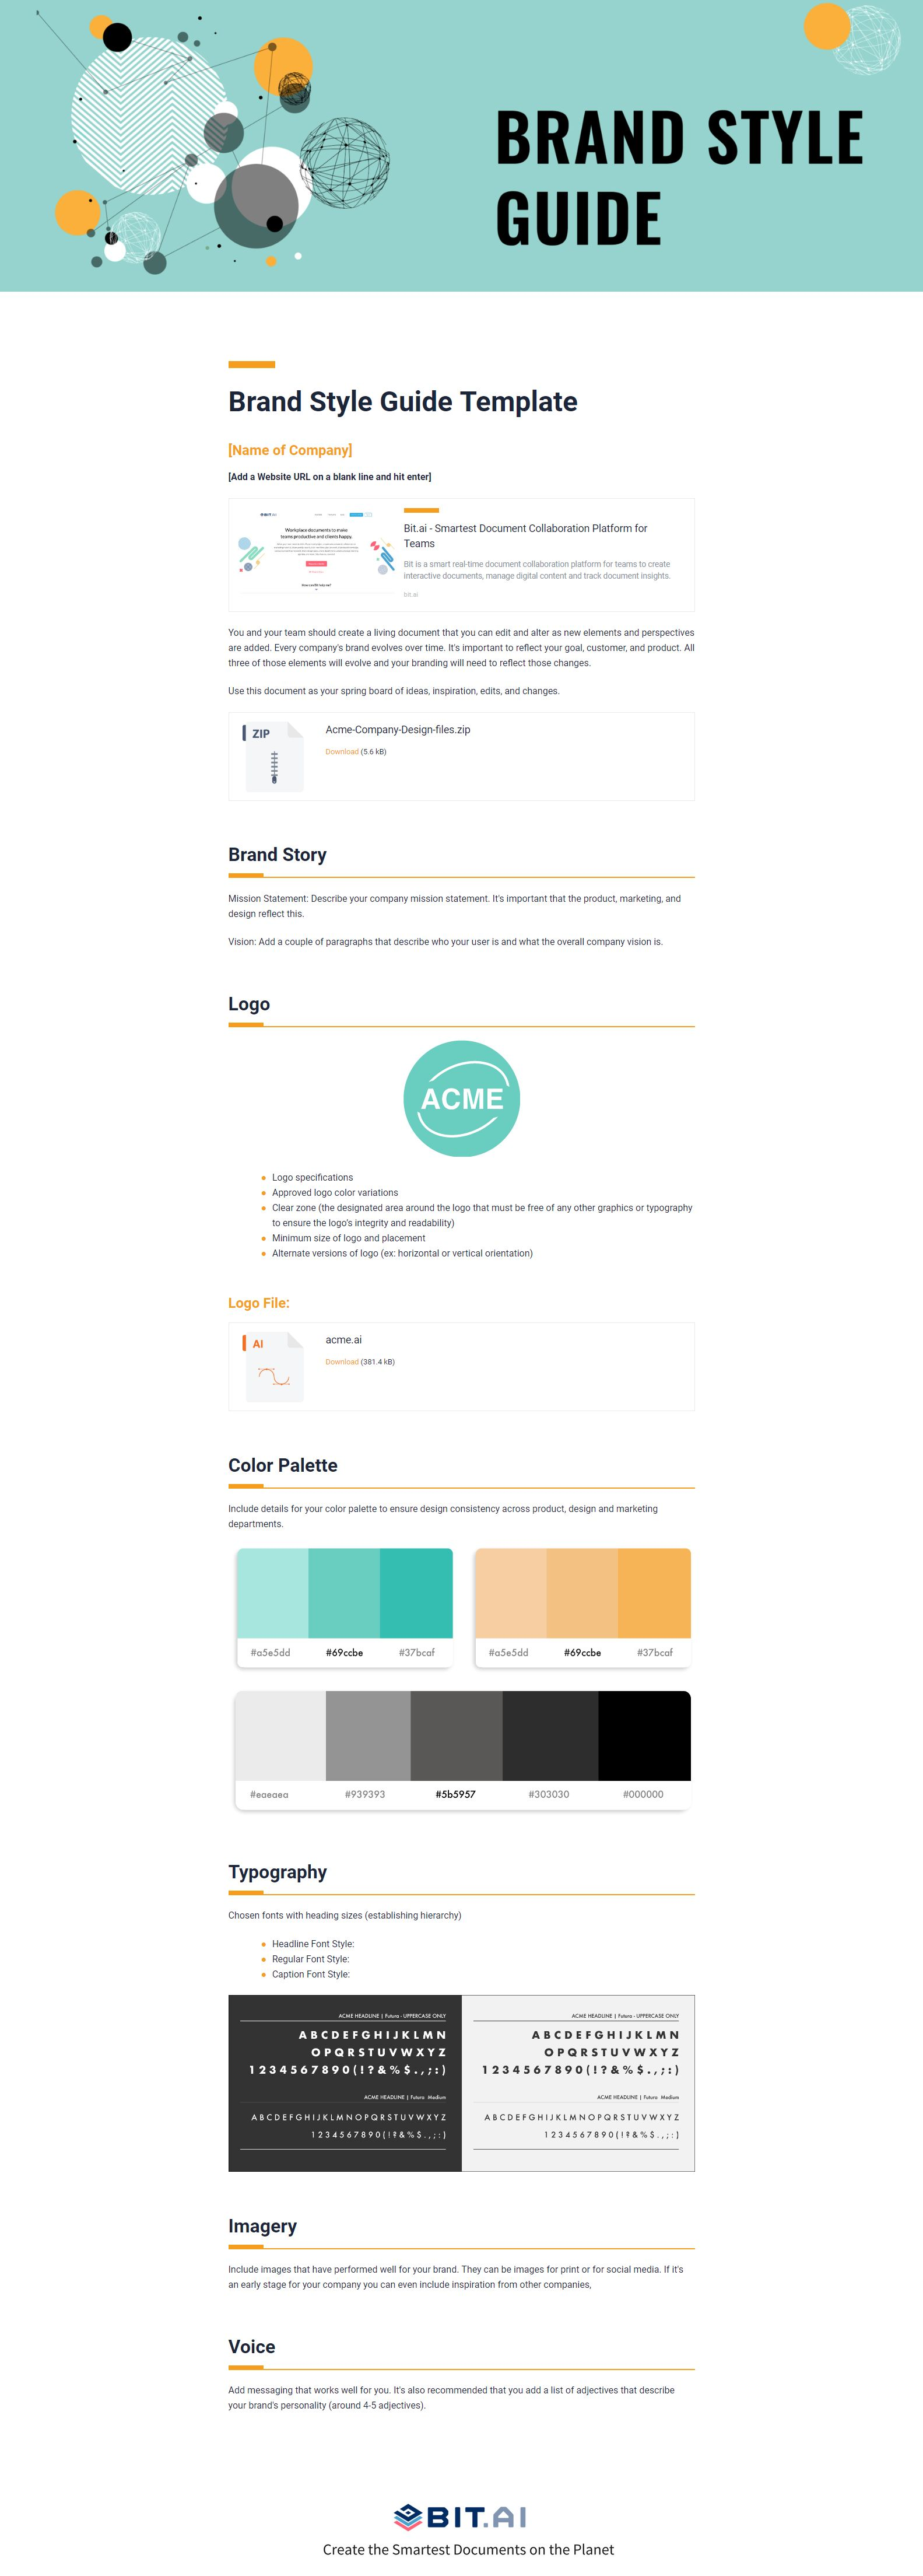 Guide Templates 🎨the Smartest Brand Style Guide Template On The 🌎planet 👉 Https .